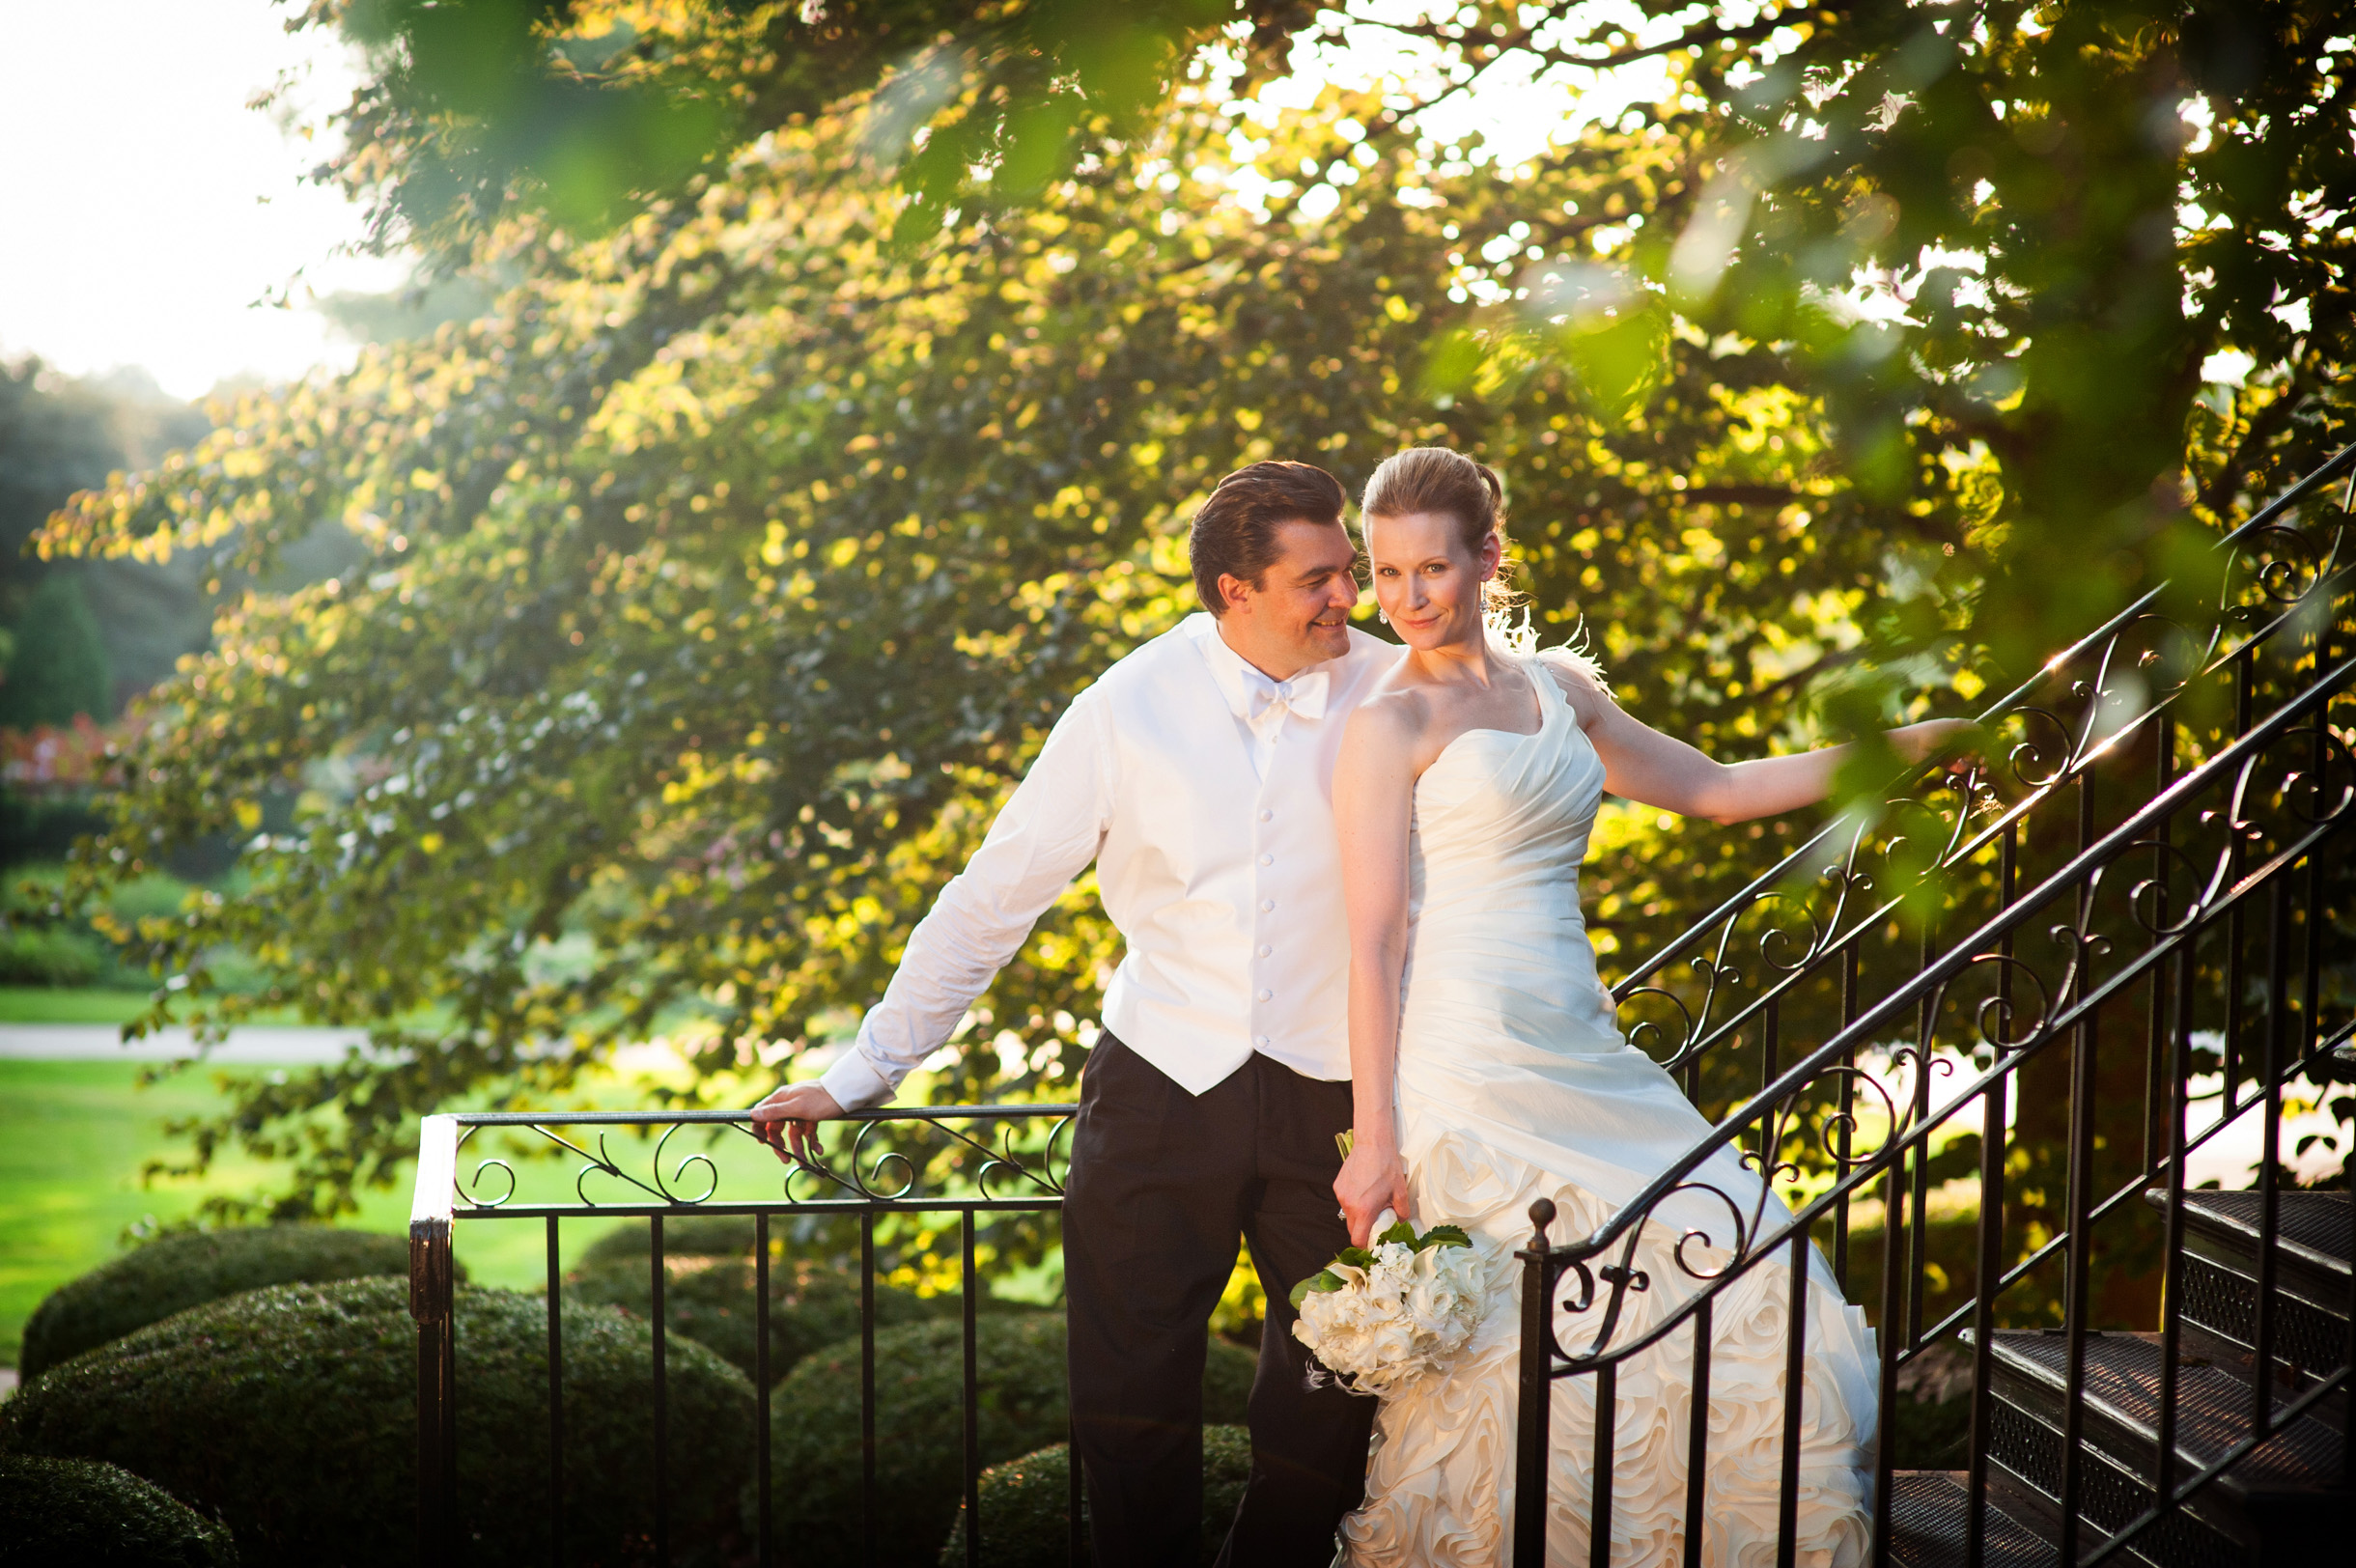 Fall wedding at Cantigny Park in Wheaton featuring a bride and groom under trees-358